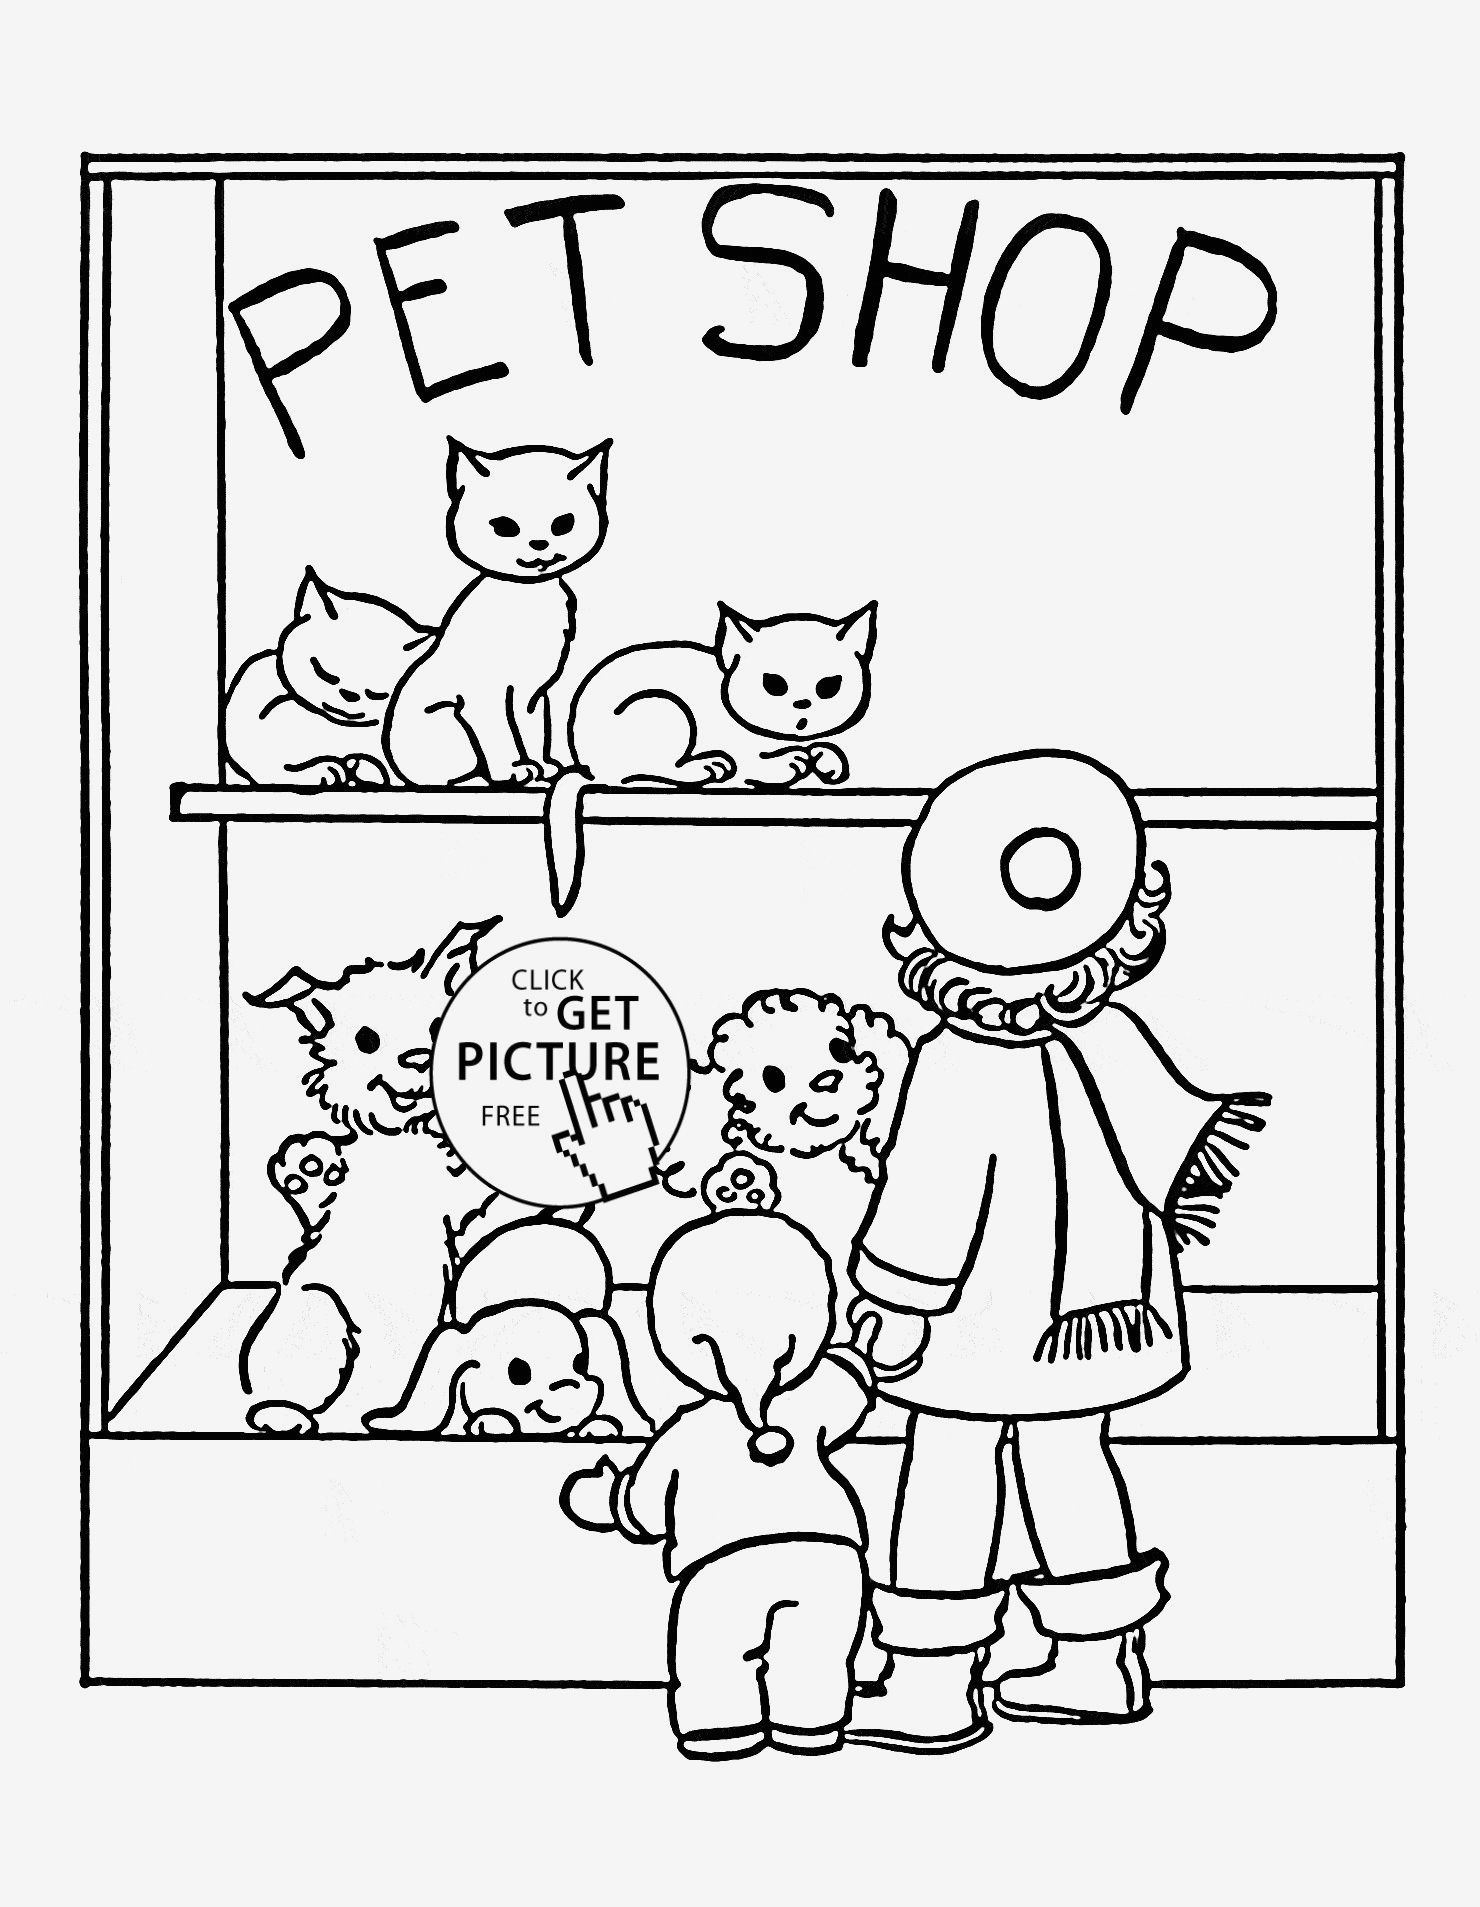 shopping coloring pages Download-Pretty Coloring Pages Amazing Advantages Cute Dog Coloring Pages Elegant Cute Coloring Pages Fresh to 5-p